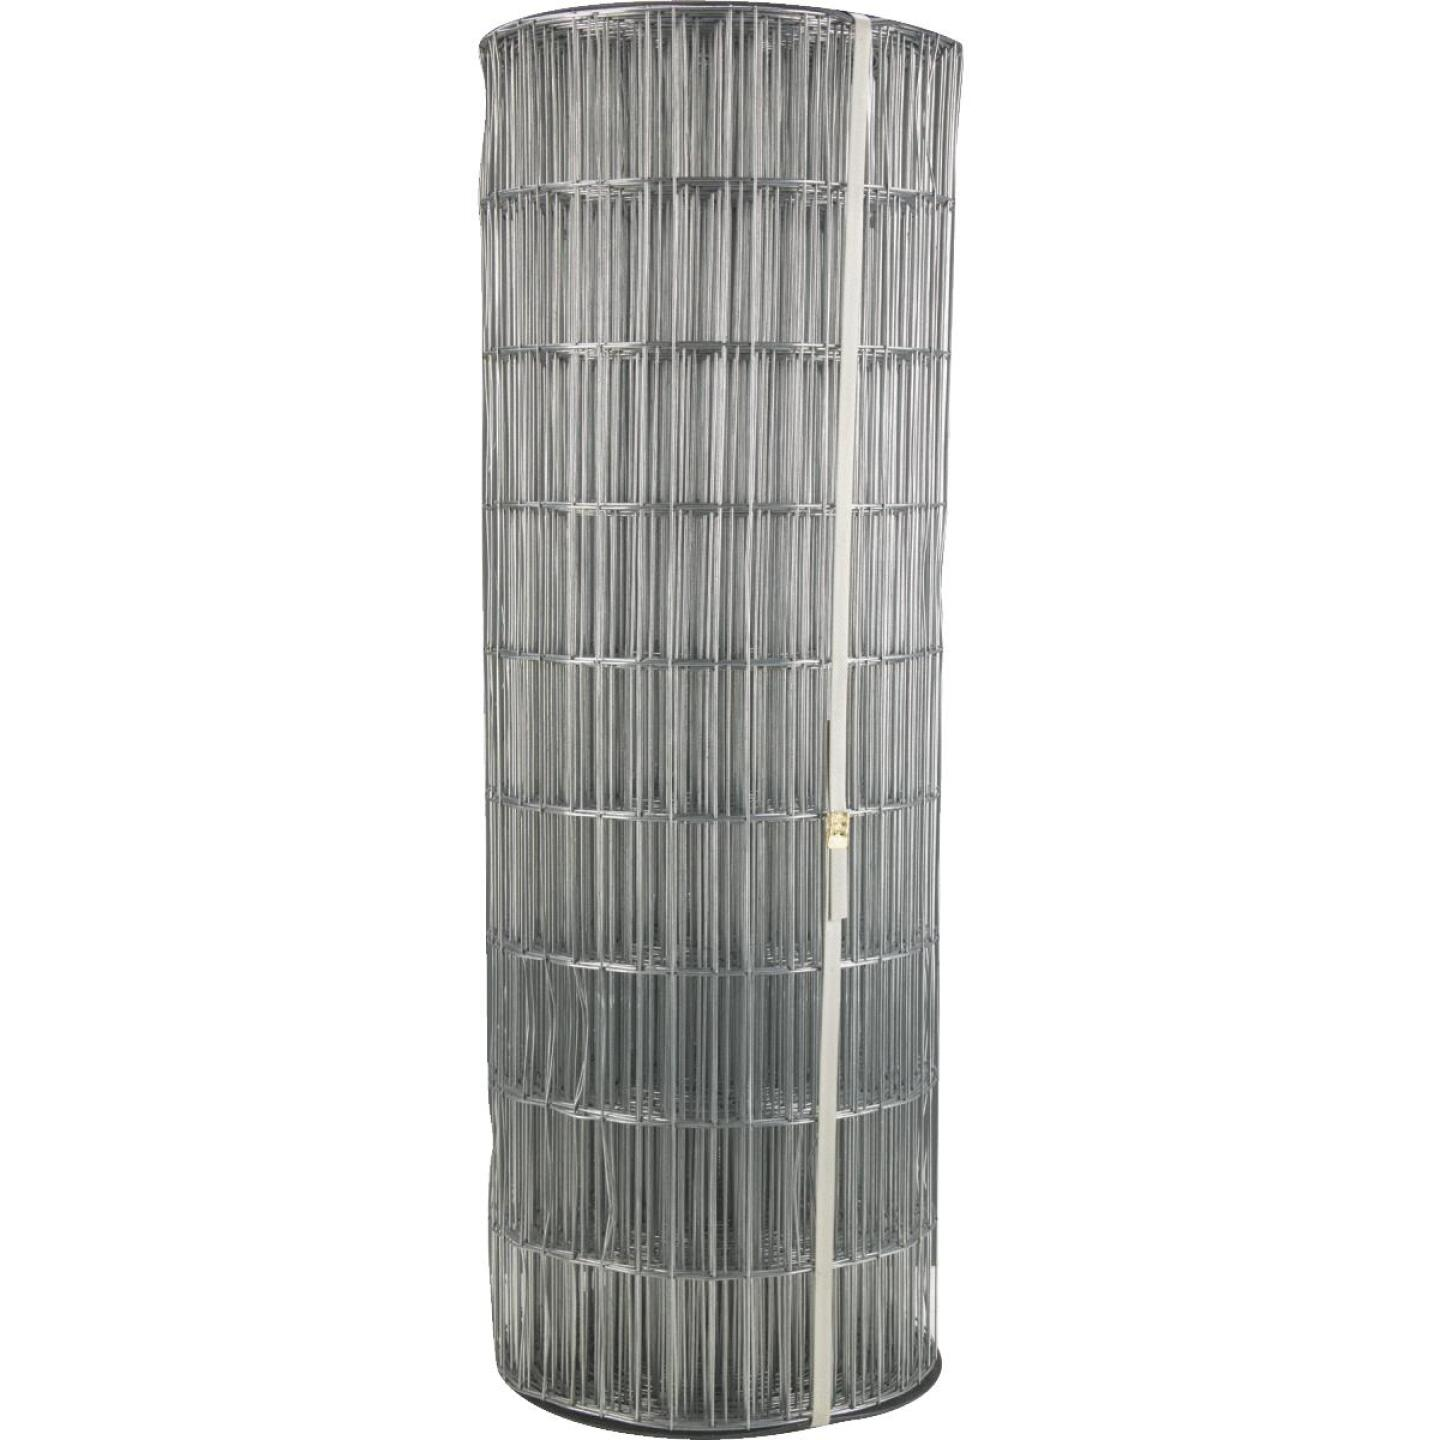 72 In. H. x 100 Ft. L. (2x4) Galvanized Welded Wire Fence Image 1